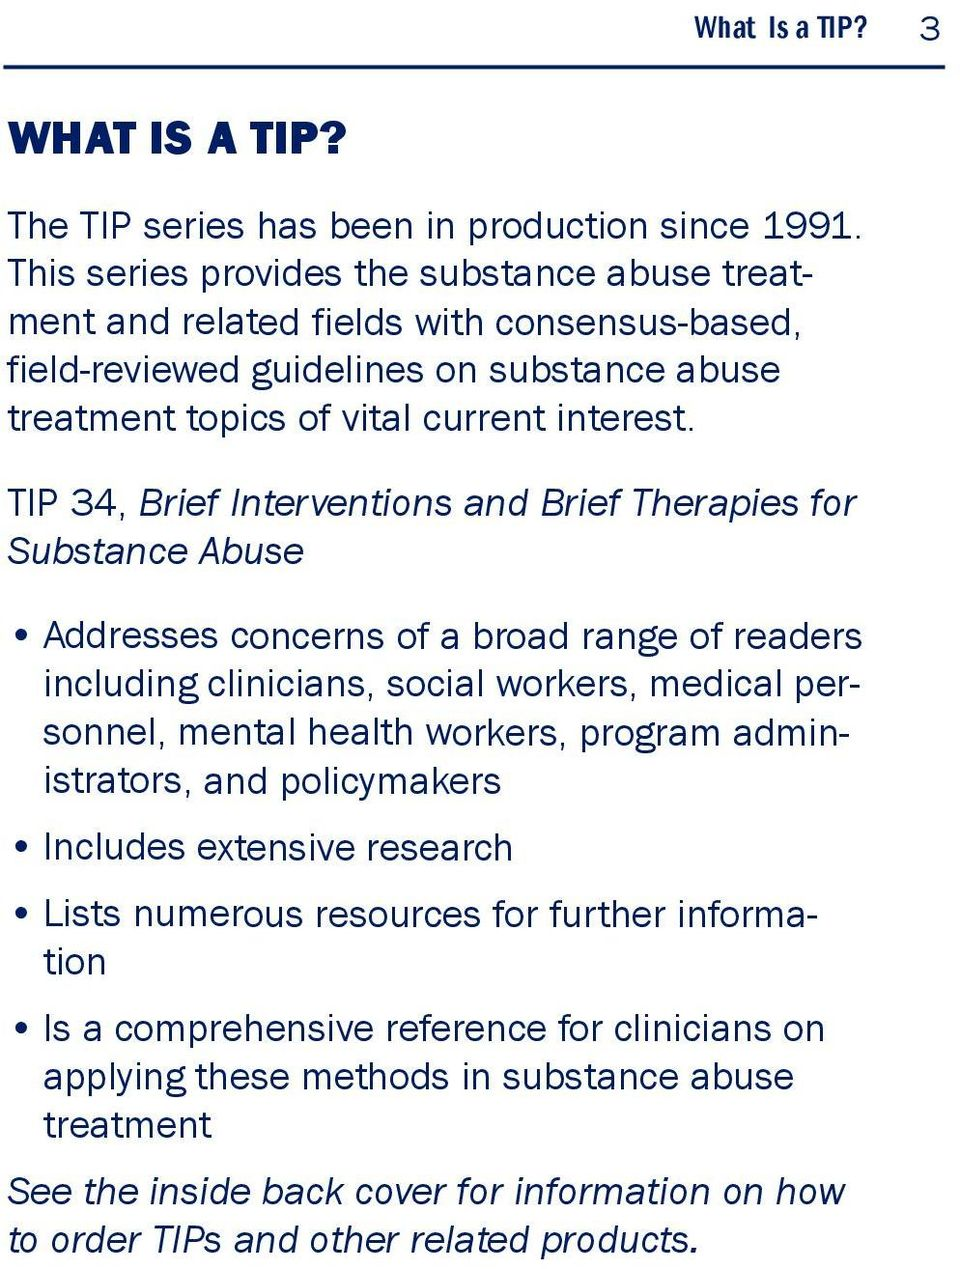 TIP 34, Brief Interventions and Brief Therapies for Substance Abuse Addresses concerns of a broad range of readers including clinicians, social workers, medical personnel, mental health